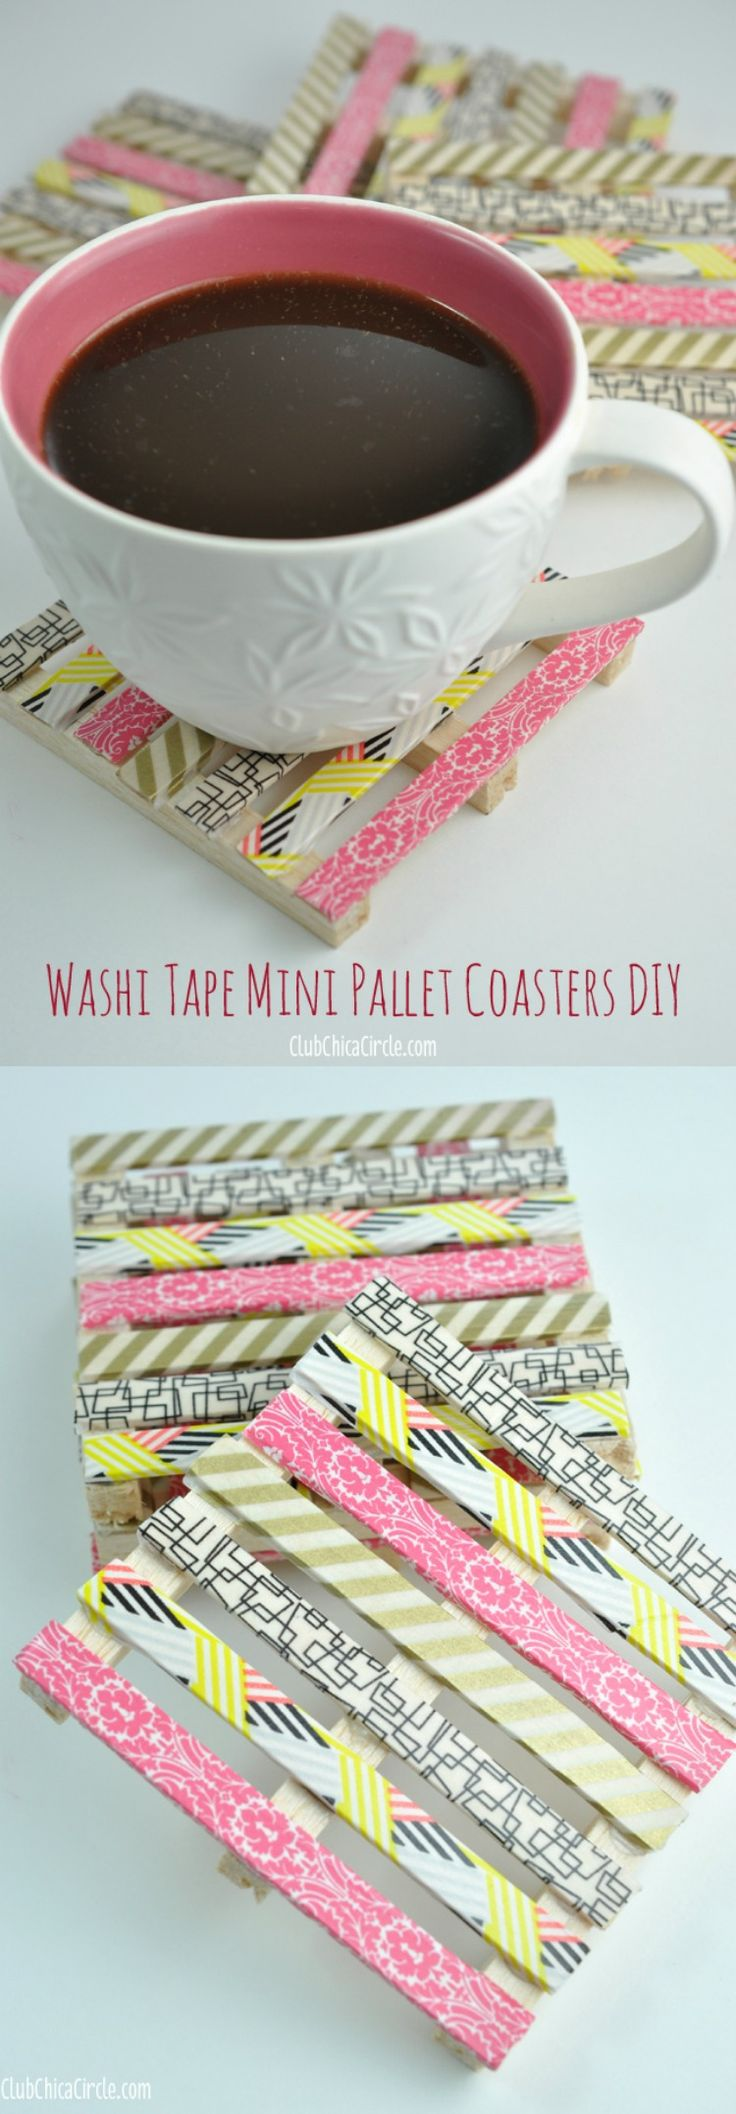 How to create mini wood pallet DIY coasters using popsicle sticks, small wood piece and washi tape. So cute and easy!